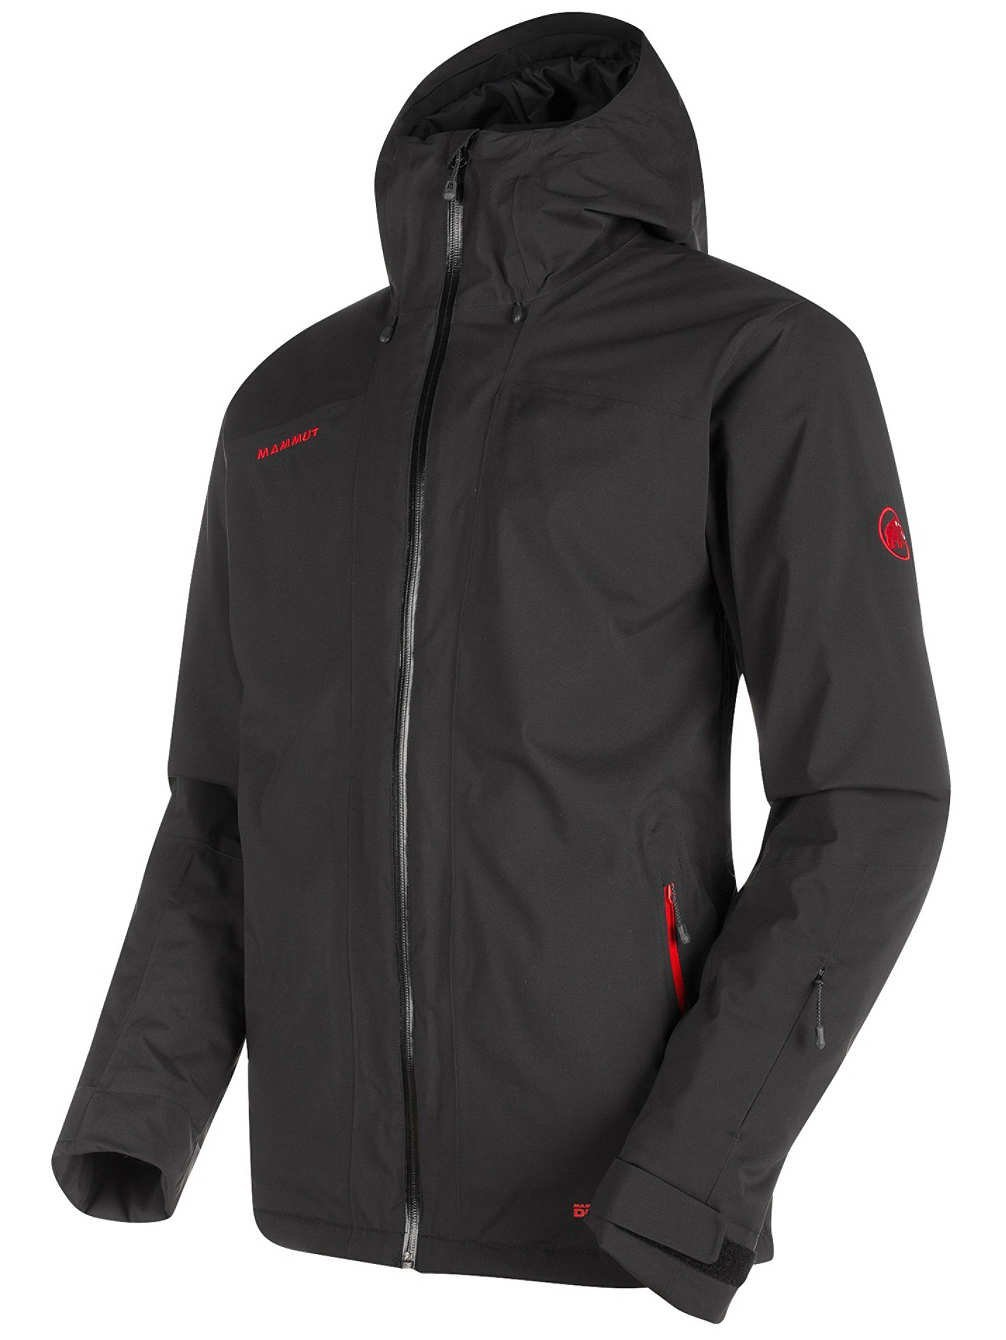 Mammut Andalo HS Thermo Hooded Jacket B071WX7WQL Small|black black Small